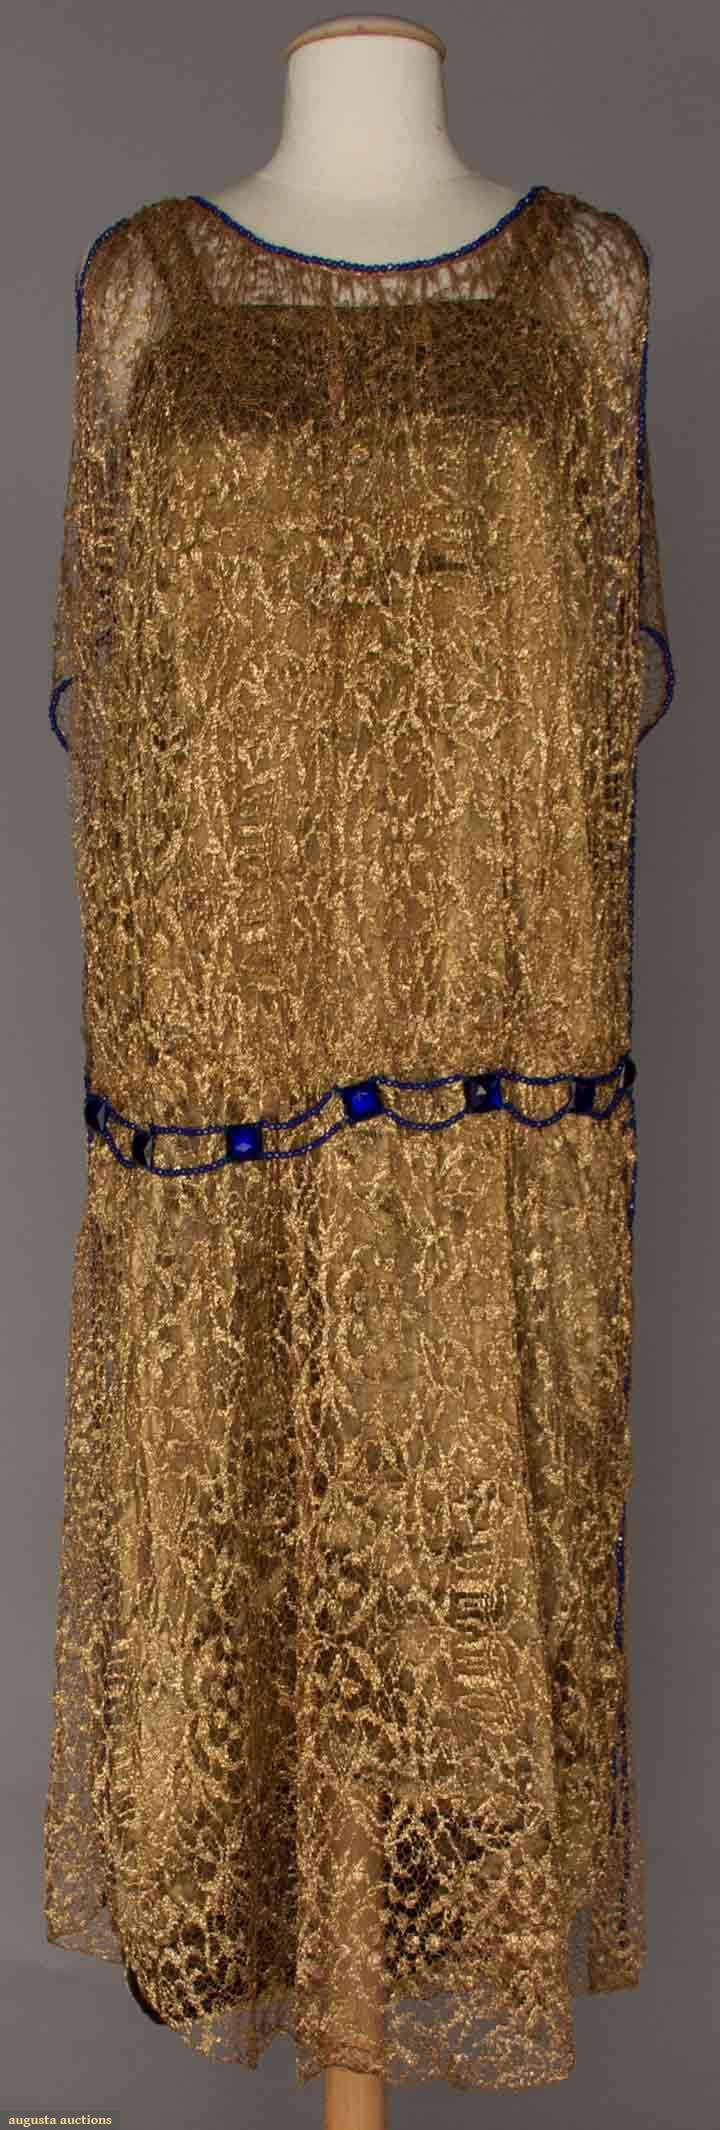 Metallic gold lace evening dress s s style pinterest